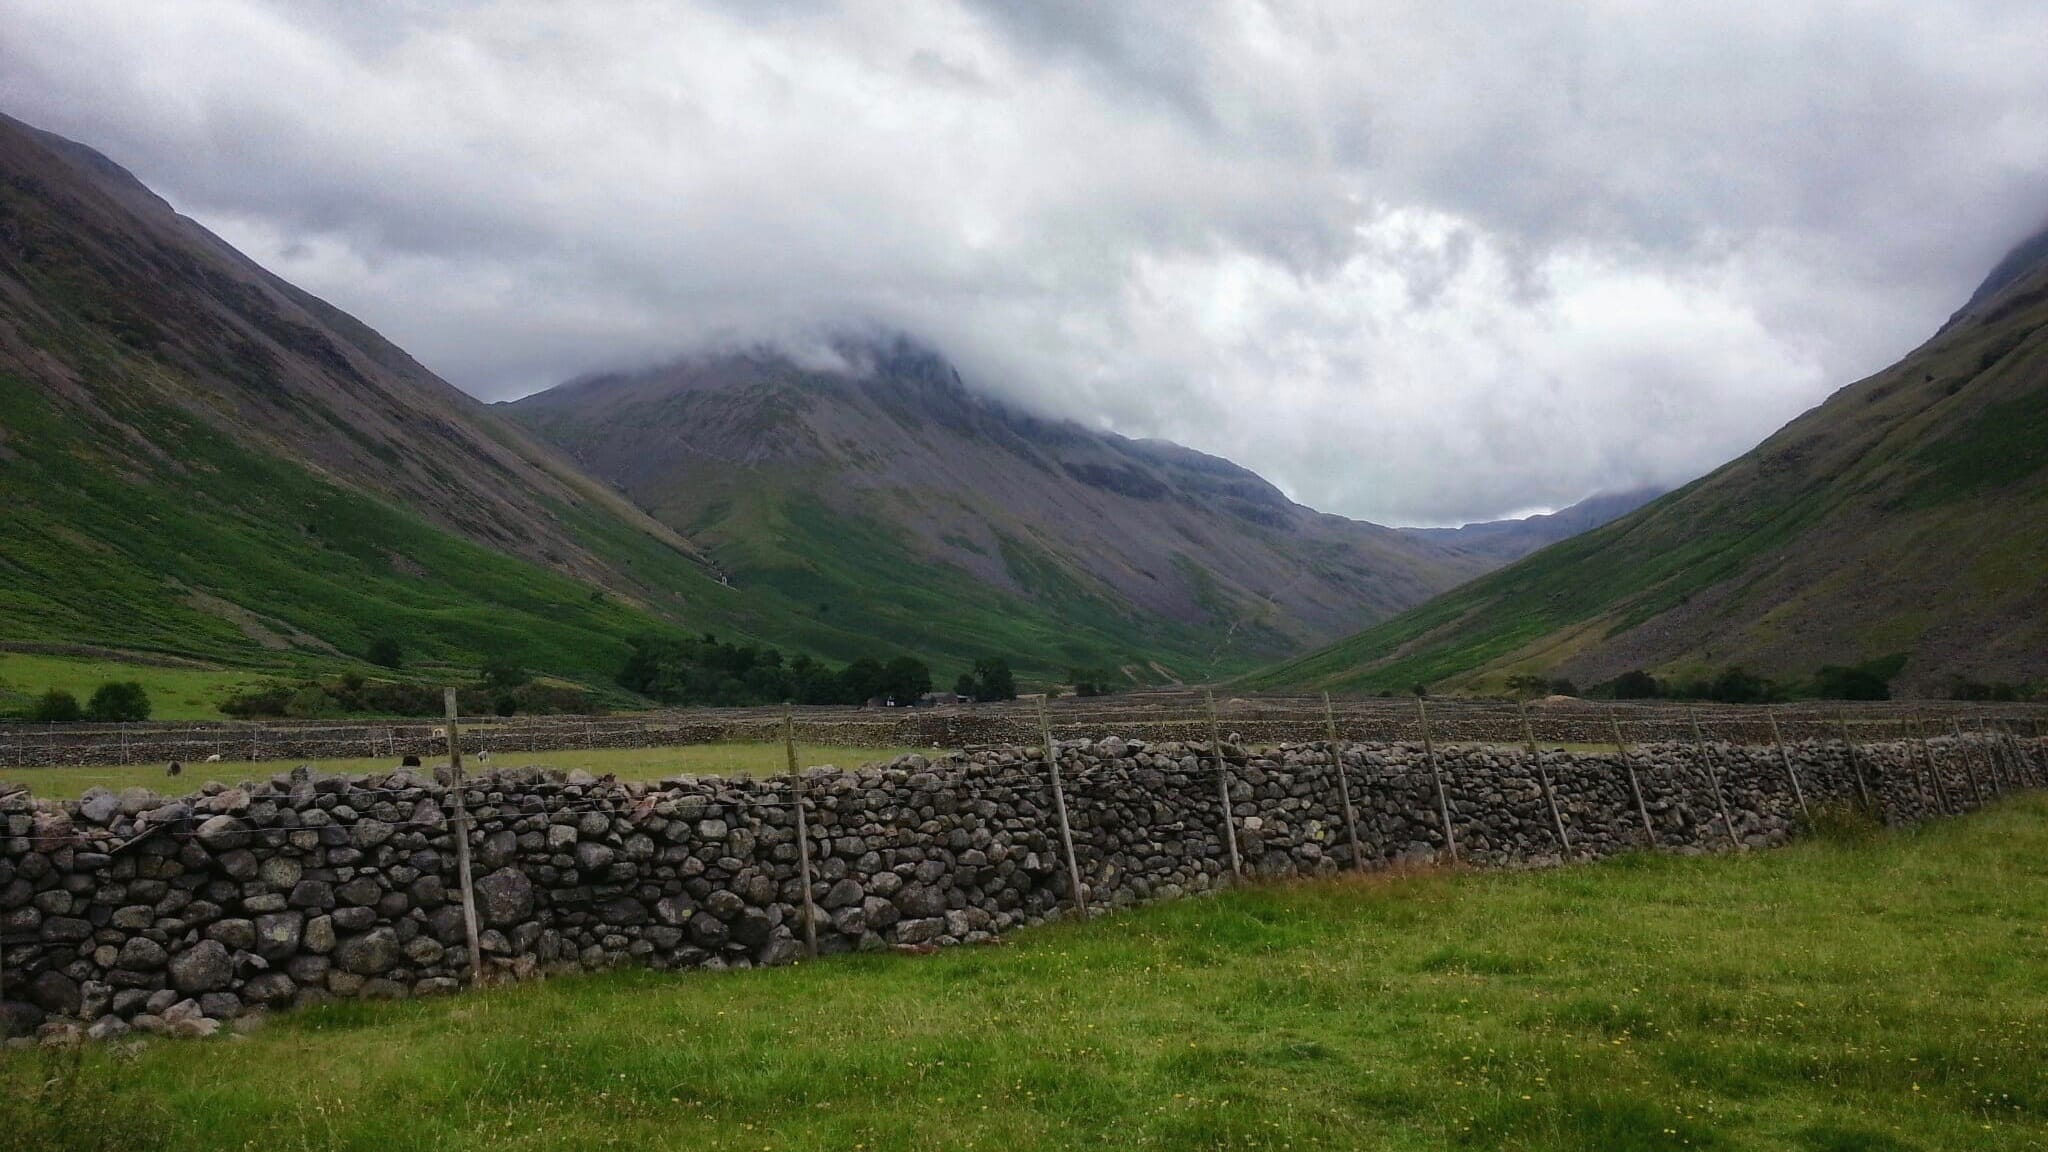 The view of Great Gable from Wasdale Head, it's summit slightly obscured by the clouds overhead.